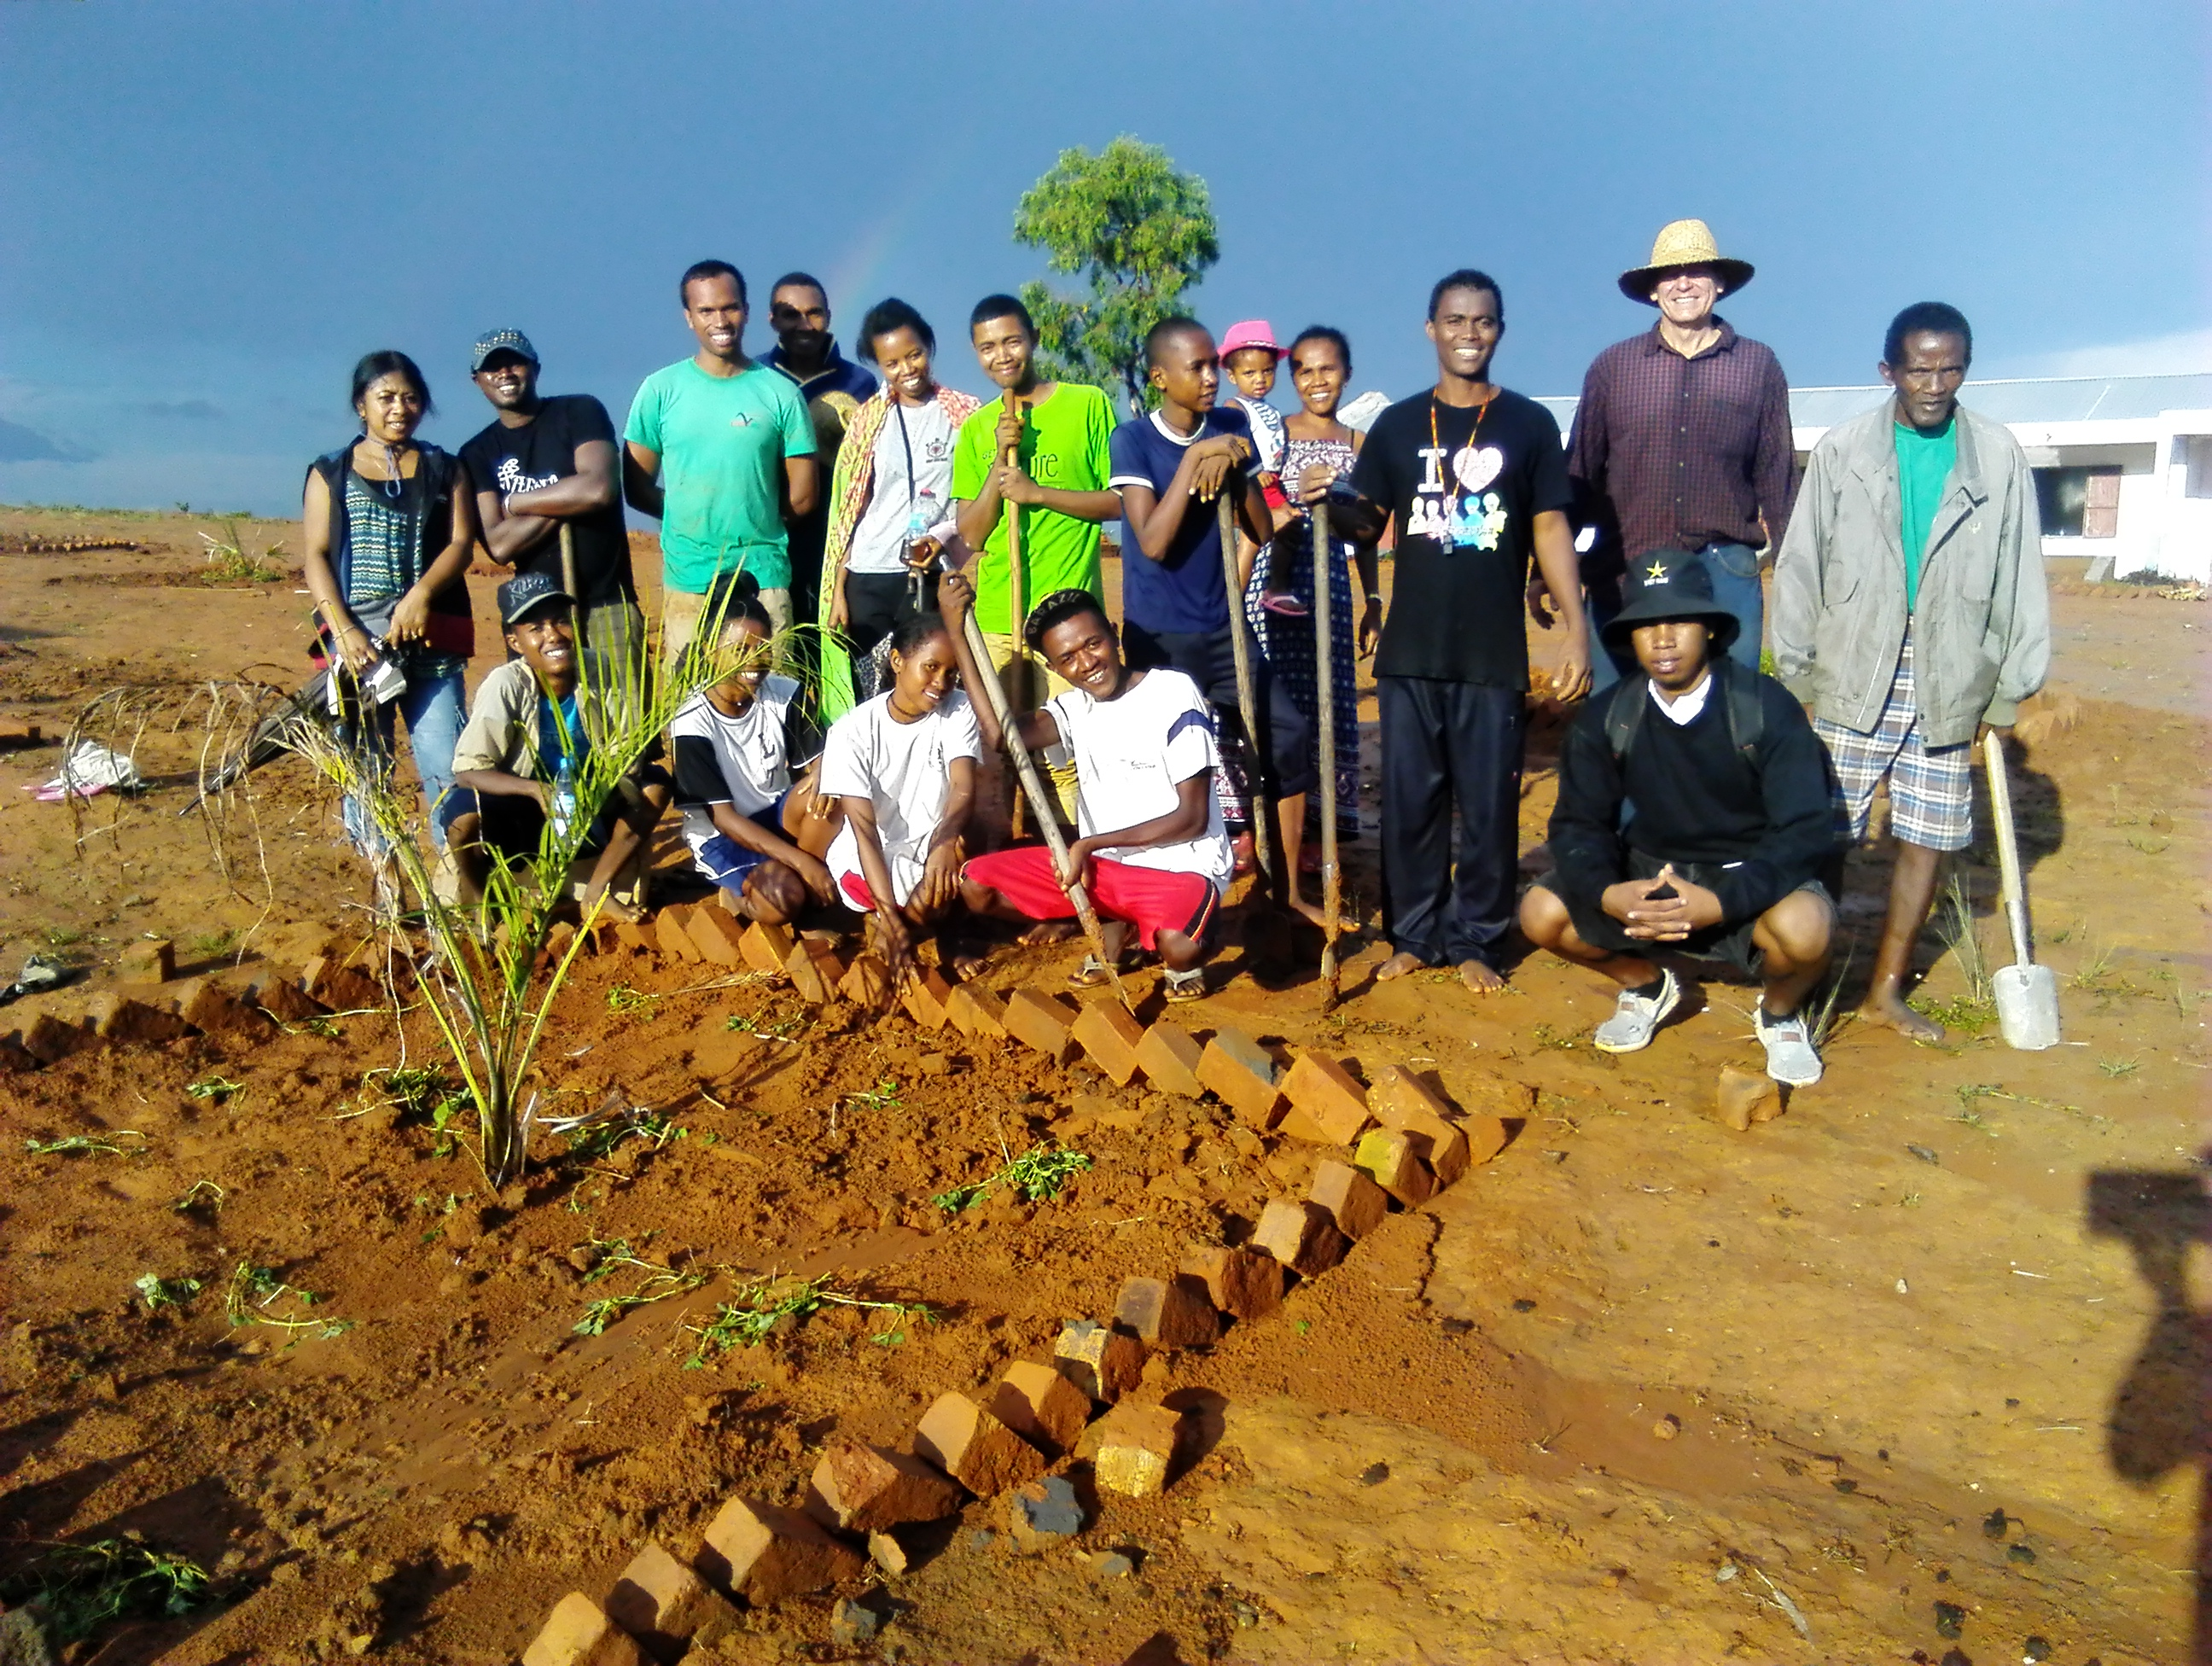 Planting trees at Mahatsinjo high school. Caption: Planting trees at the Mahatsinjo public high school. After the rain, a rainbow. Mayor of Mahatsinjo is on right. The principal is holding her child.